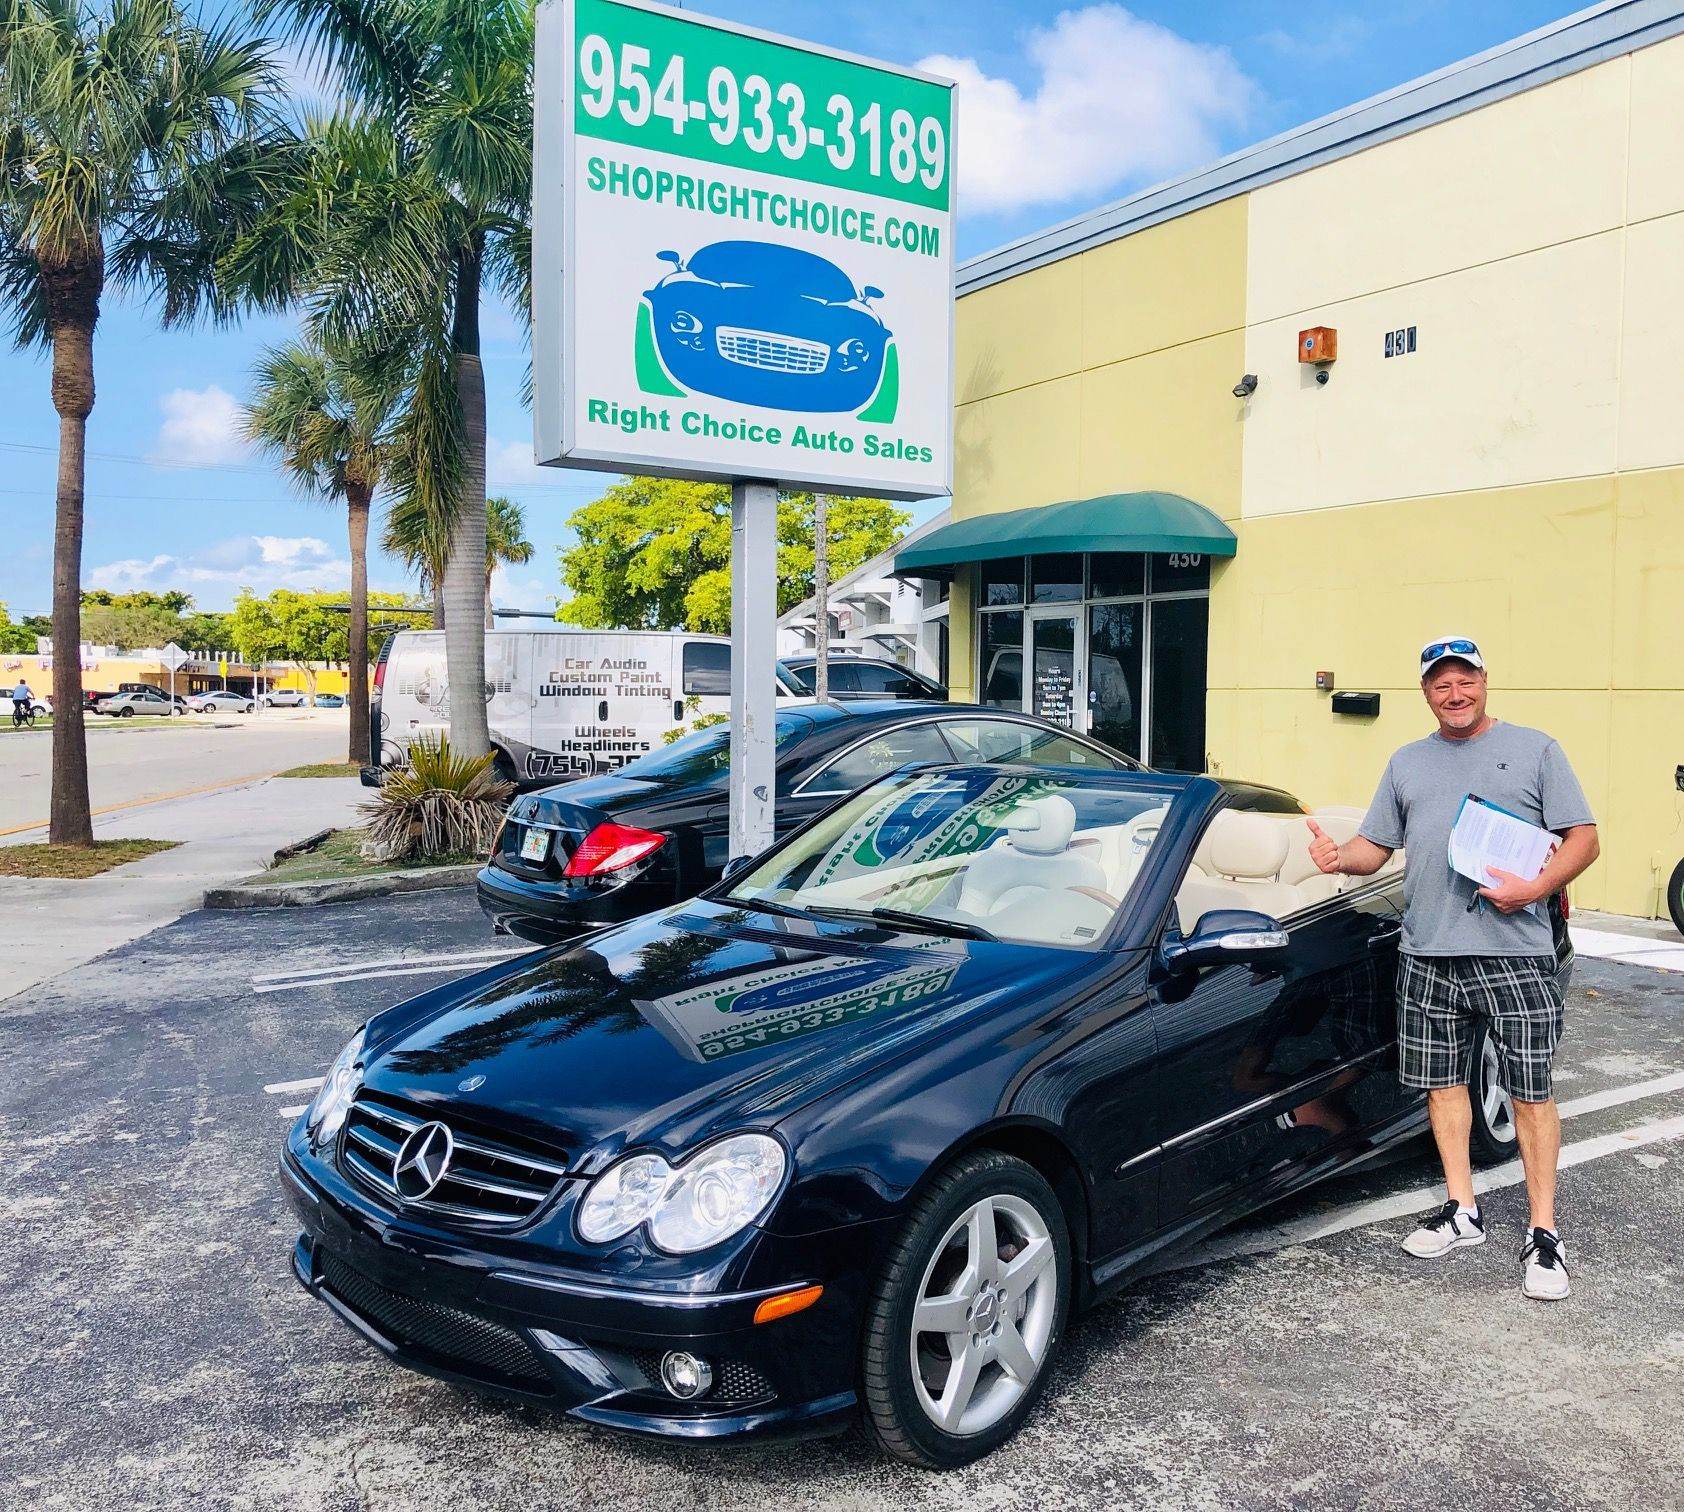 2006 Mercedes Benz Clk500 Cabriolet Cars For Sale Used Luxury Cars Used Cars